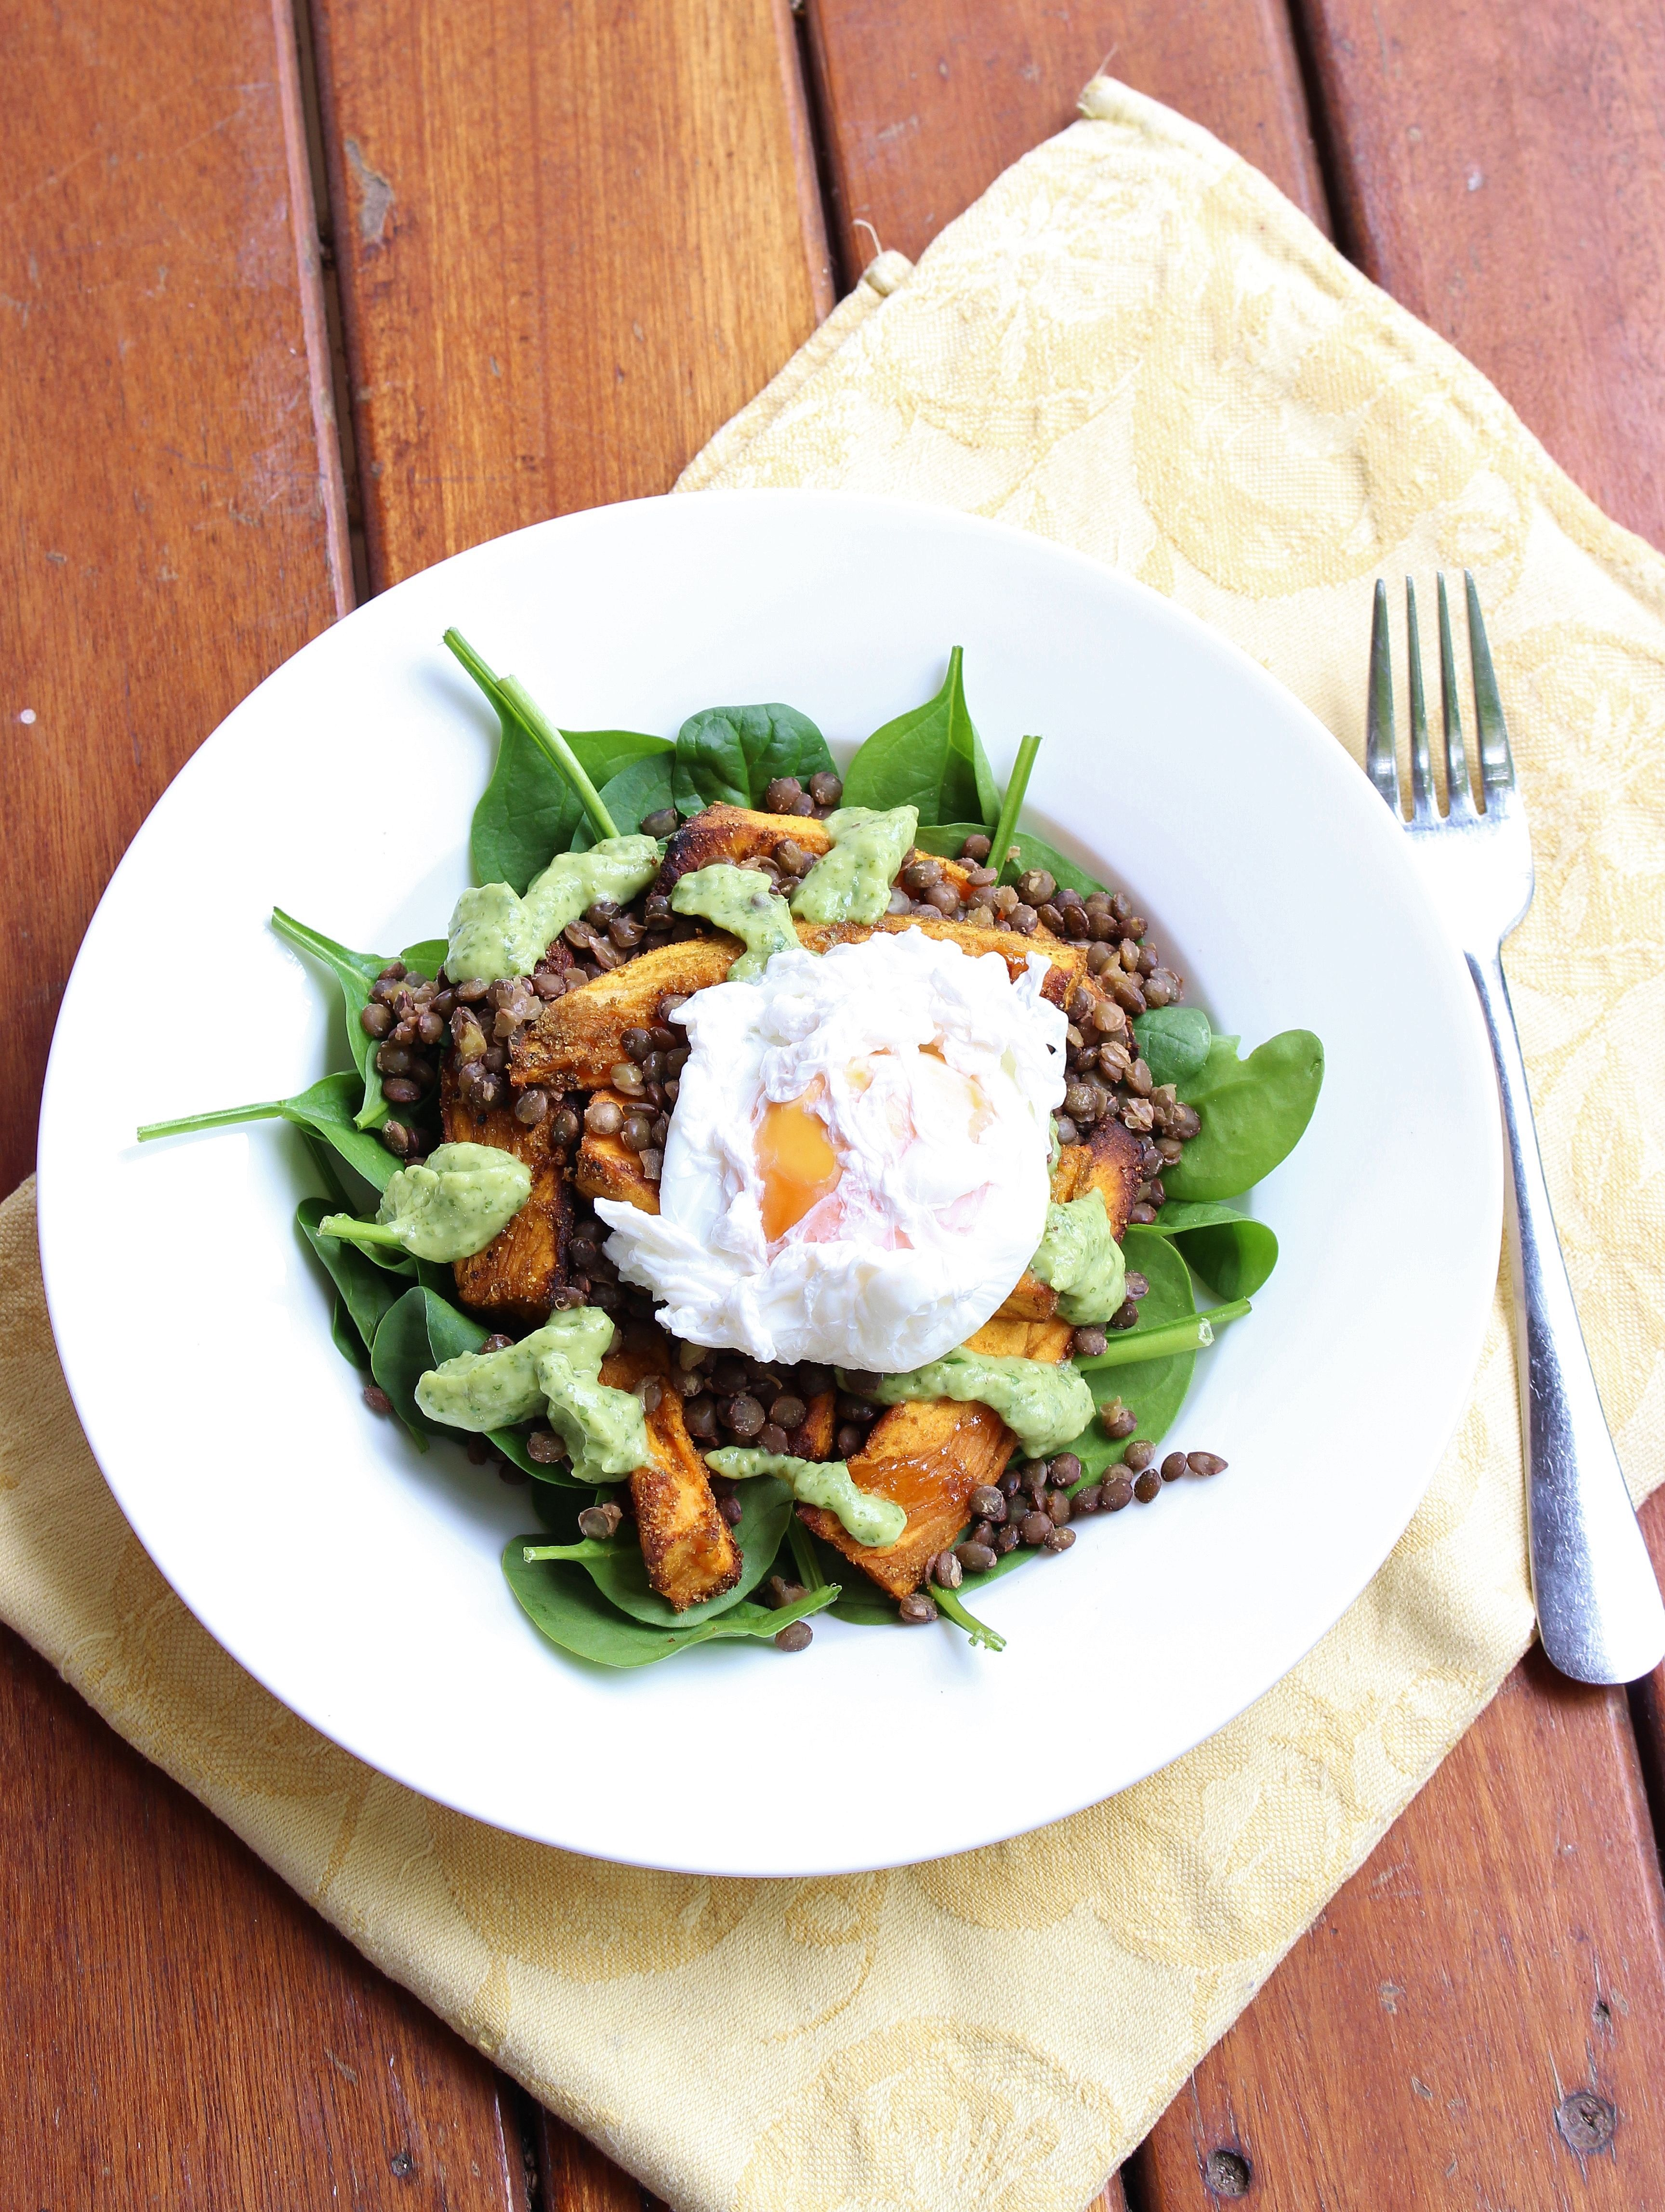 Discussion on this topic: Roasted Sweet Potatoes, Poached Eggs, Avocado, roasted-sweet-potatoes-poached-eggs-avocado/